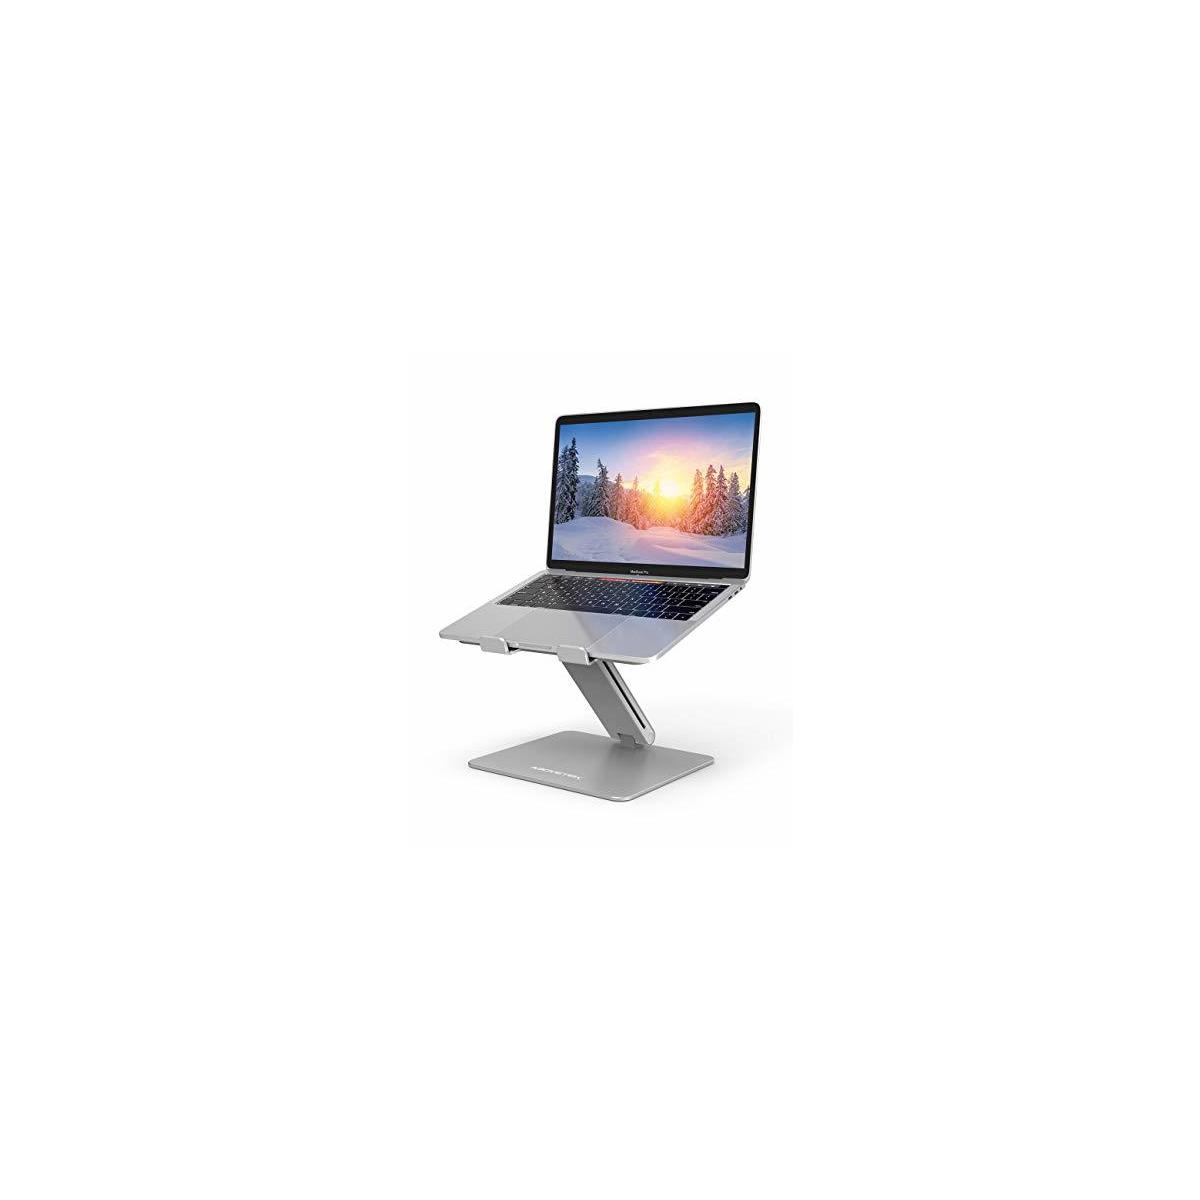 AboveTEK Laptop Stand, Adjustable Computer Riser, Compatible with Mac MacBook Pro Air Notebook, Up to 17inches, Supports Up to 44 Lbs -Silver